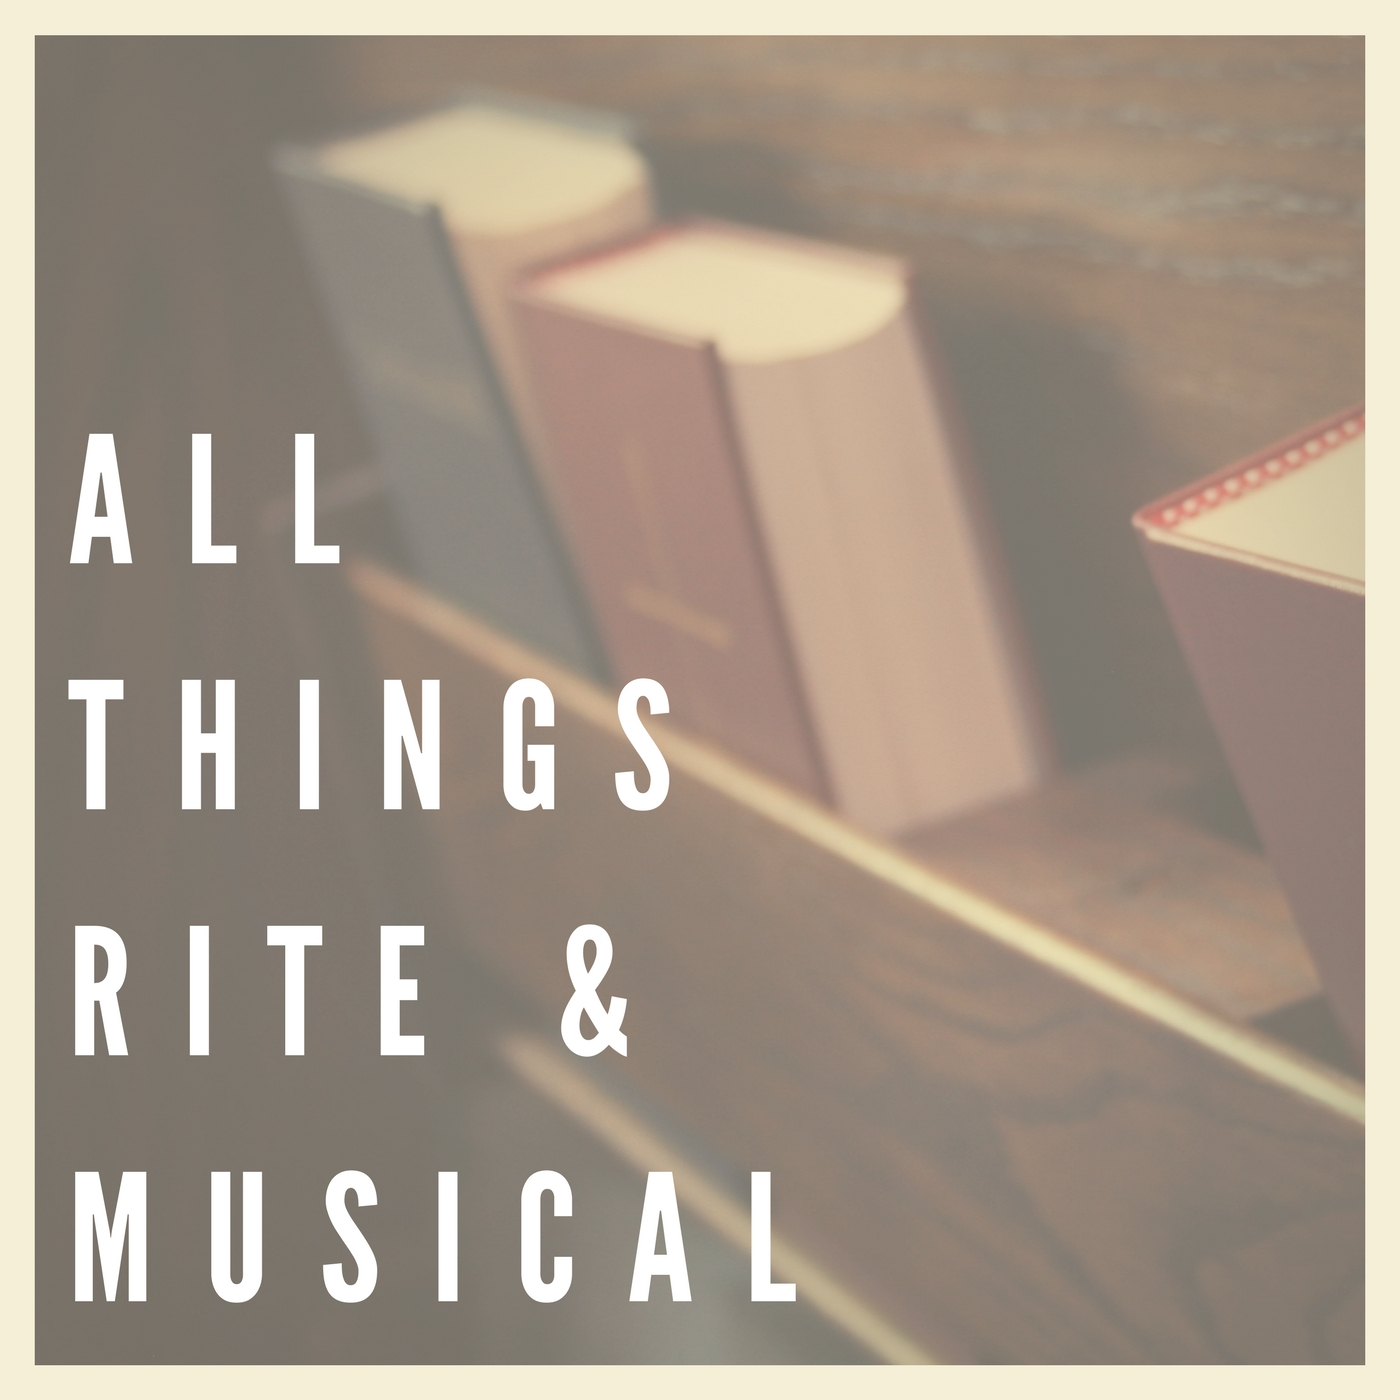 All Things Rite & Musical